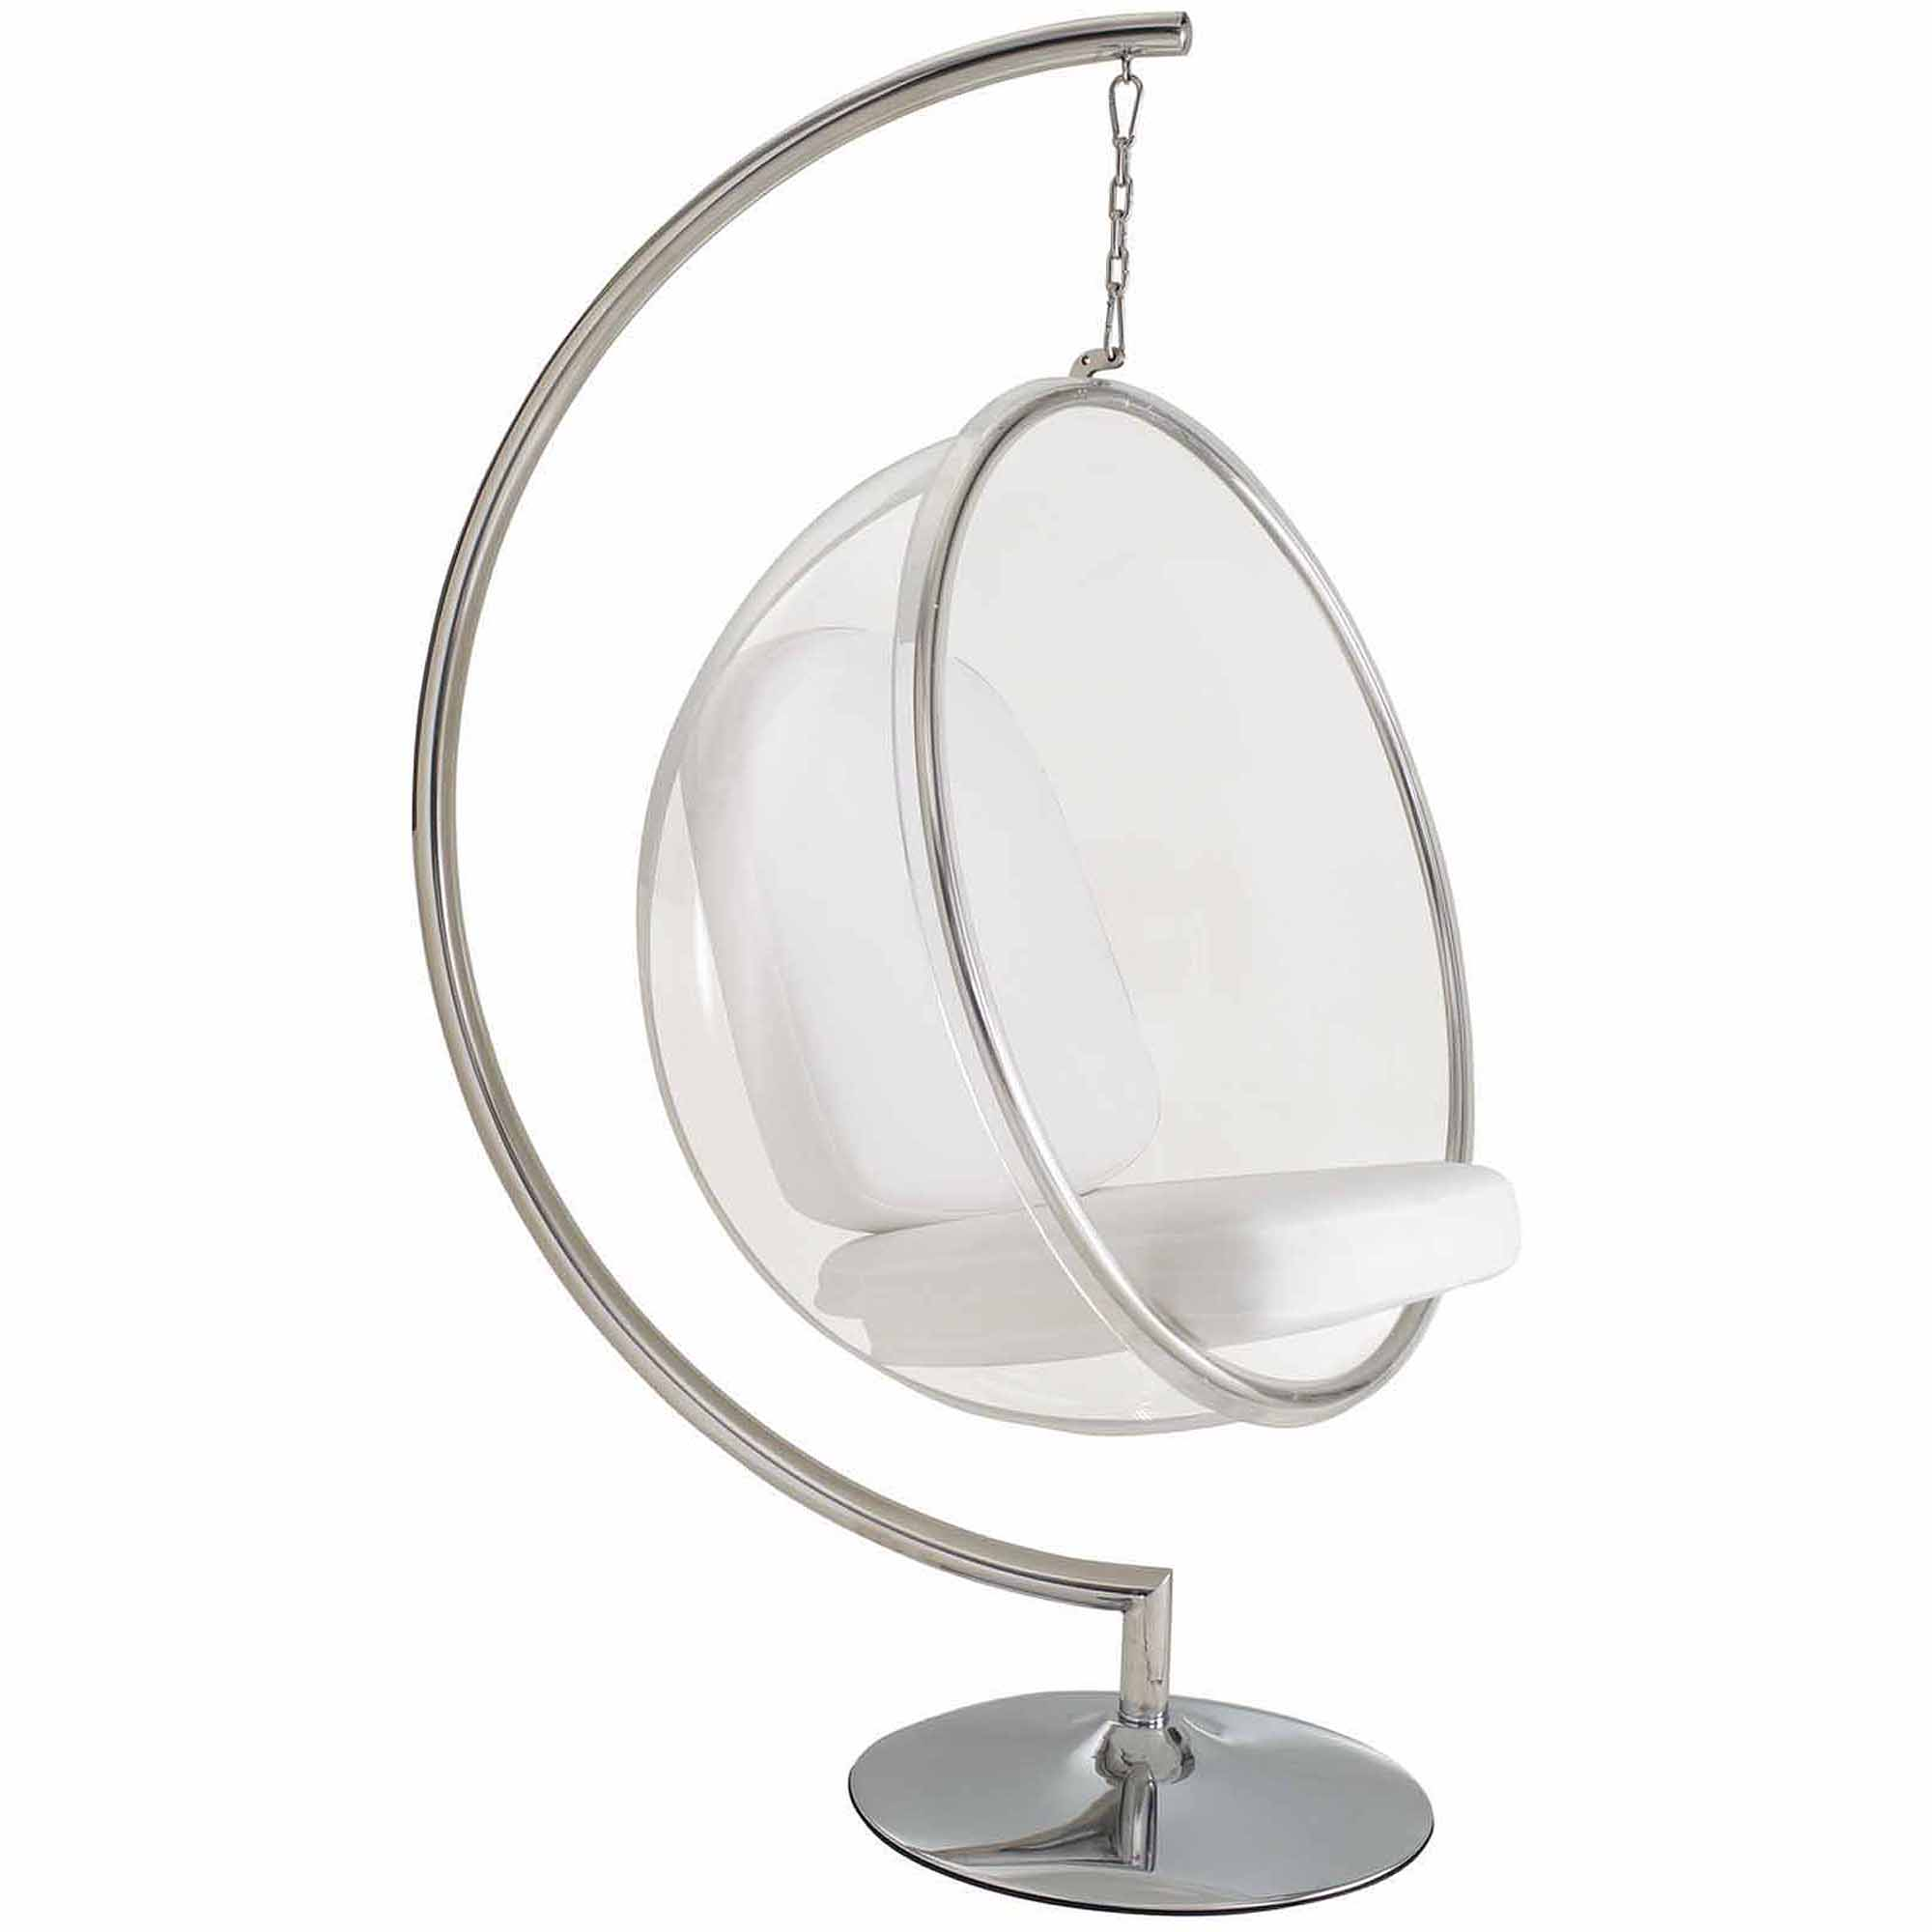 Modway Ring Lounge Acrylic Chair with Steel Rim Multiple Colors